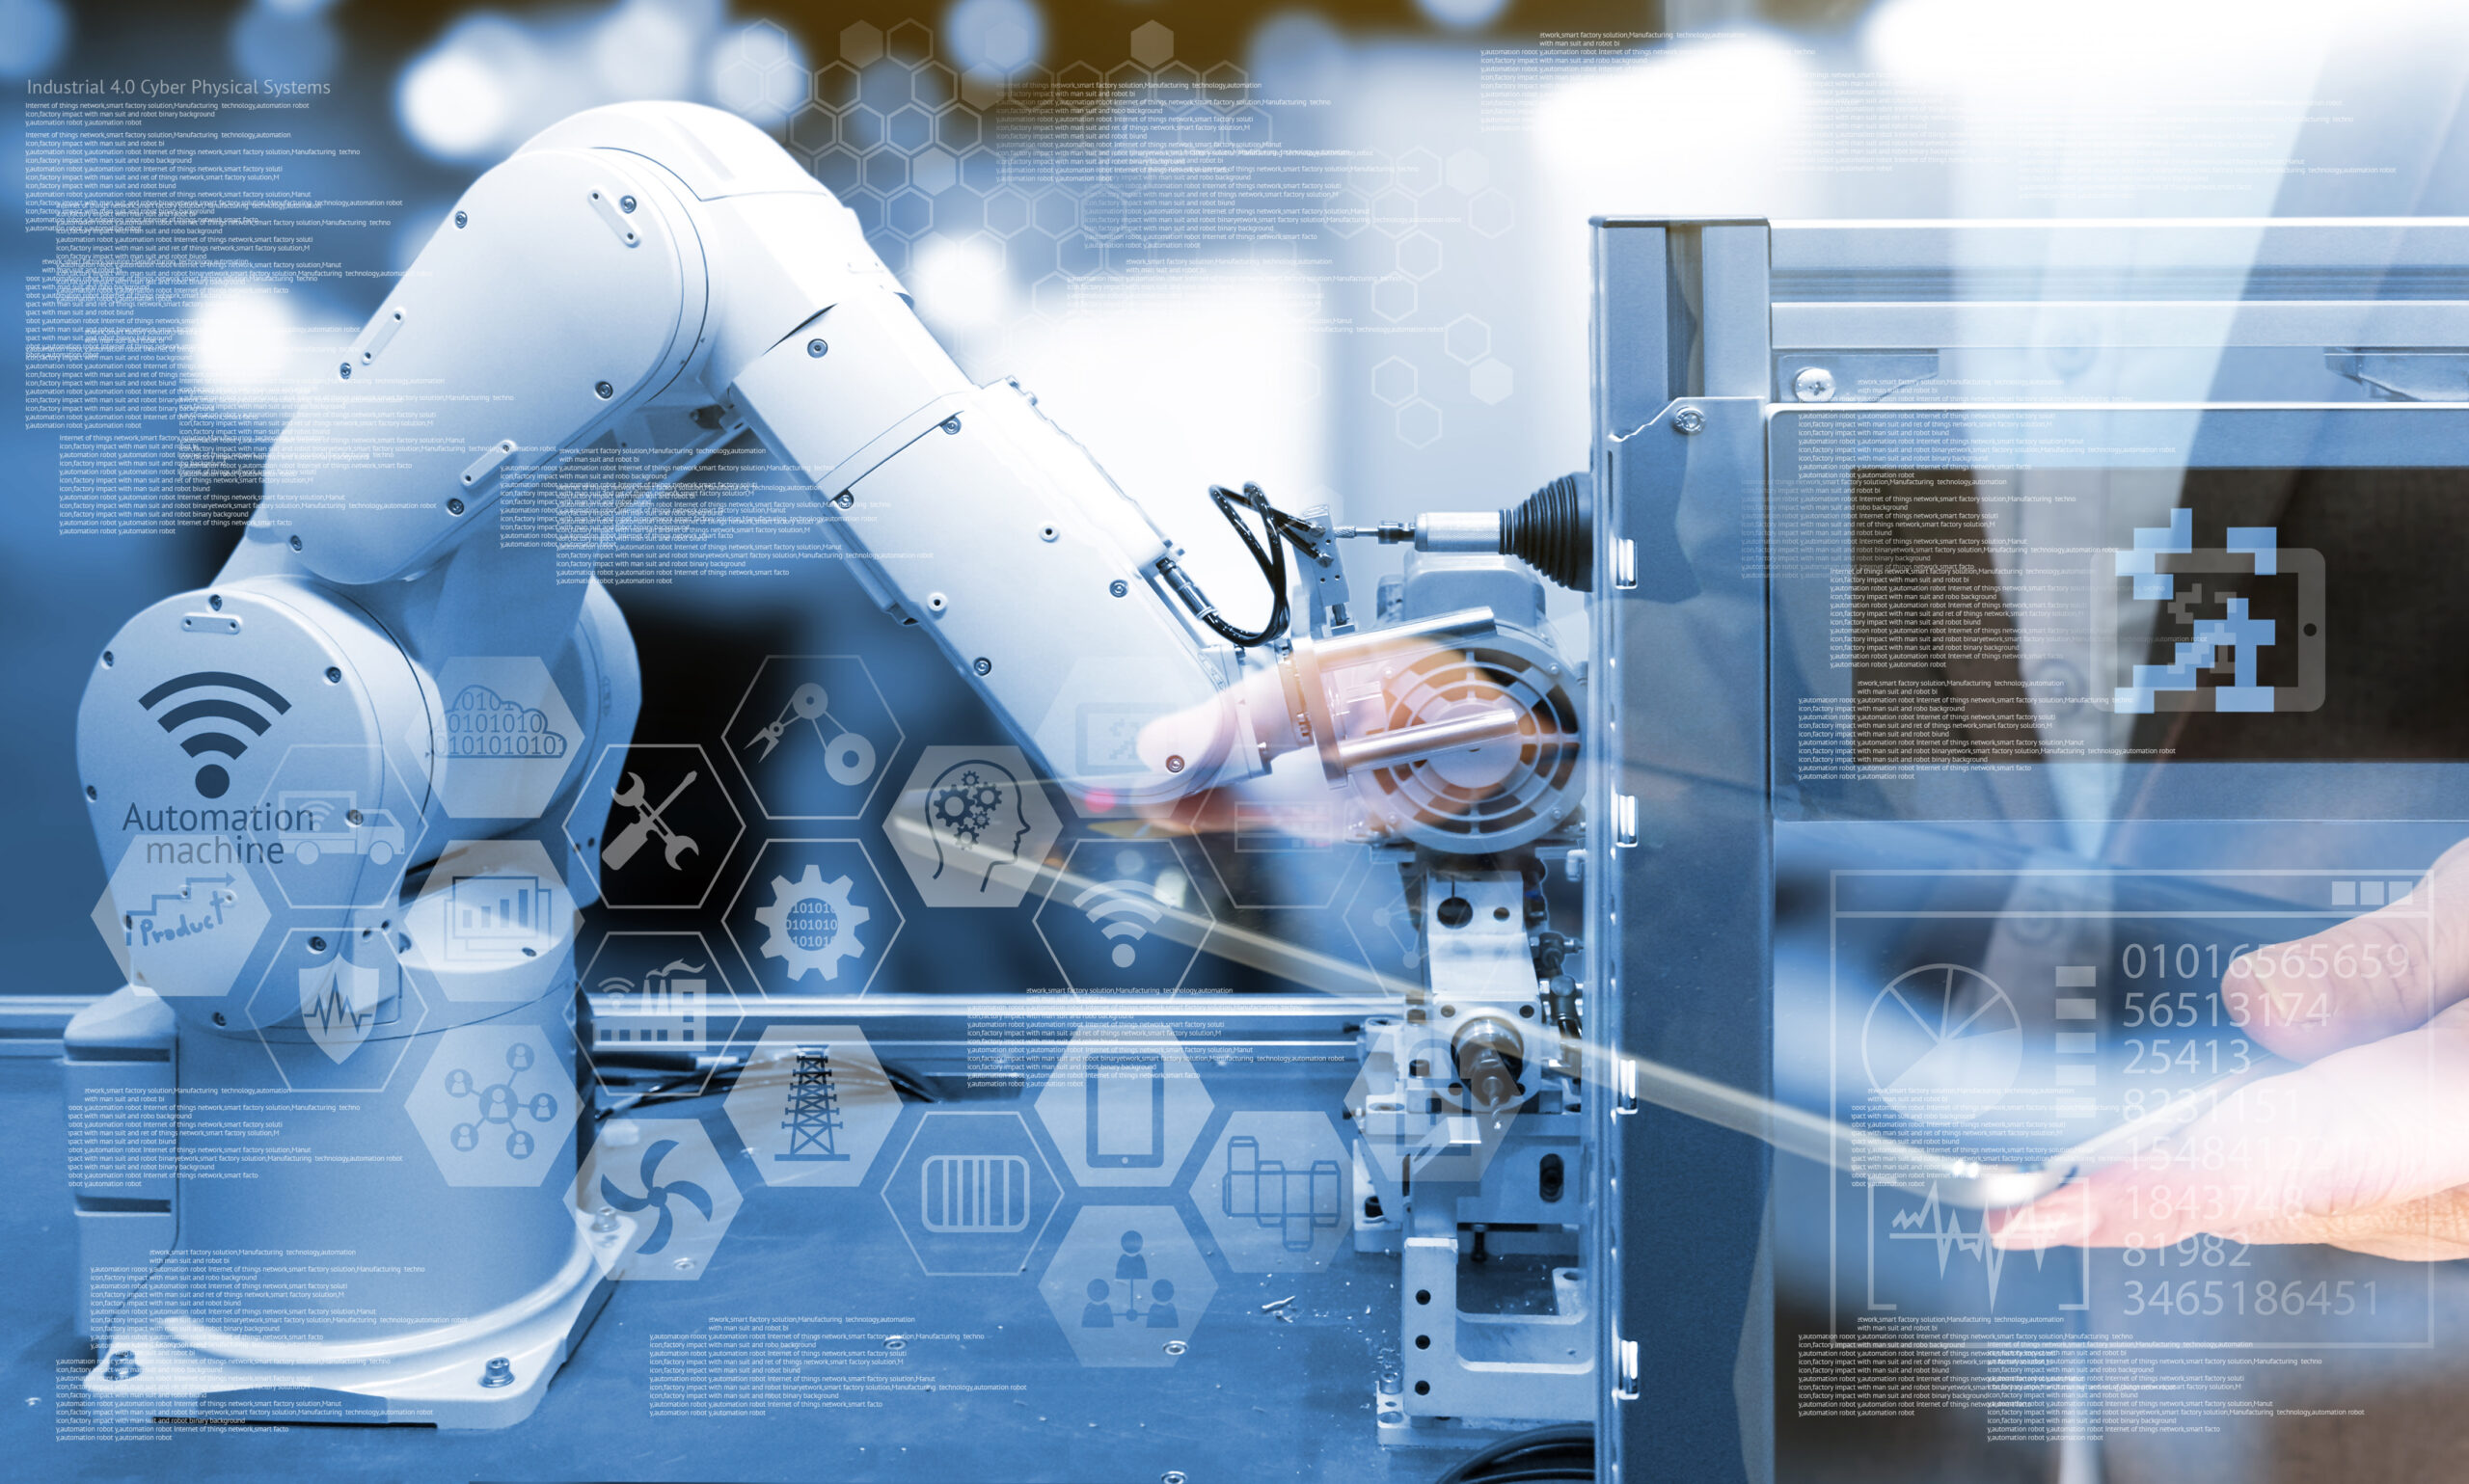 Industry 4.0 concept .Business man holding tablet with industry